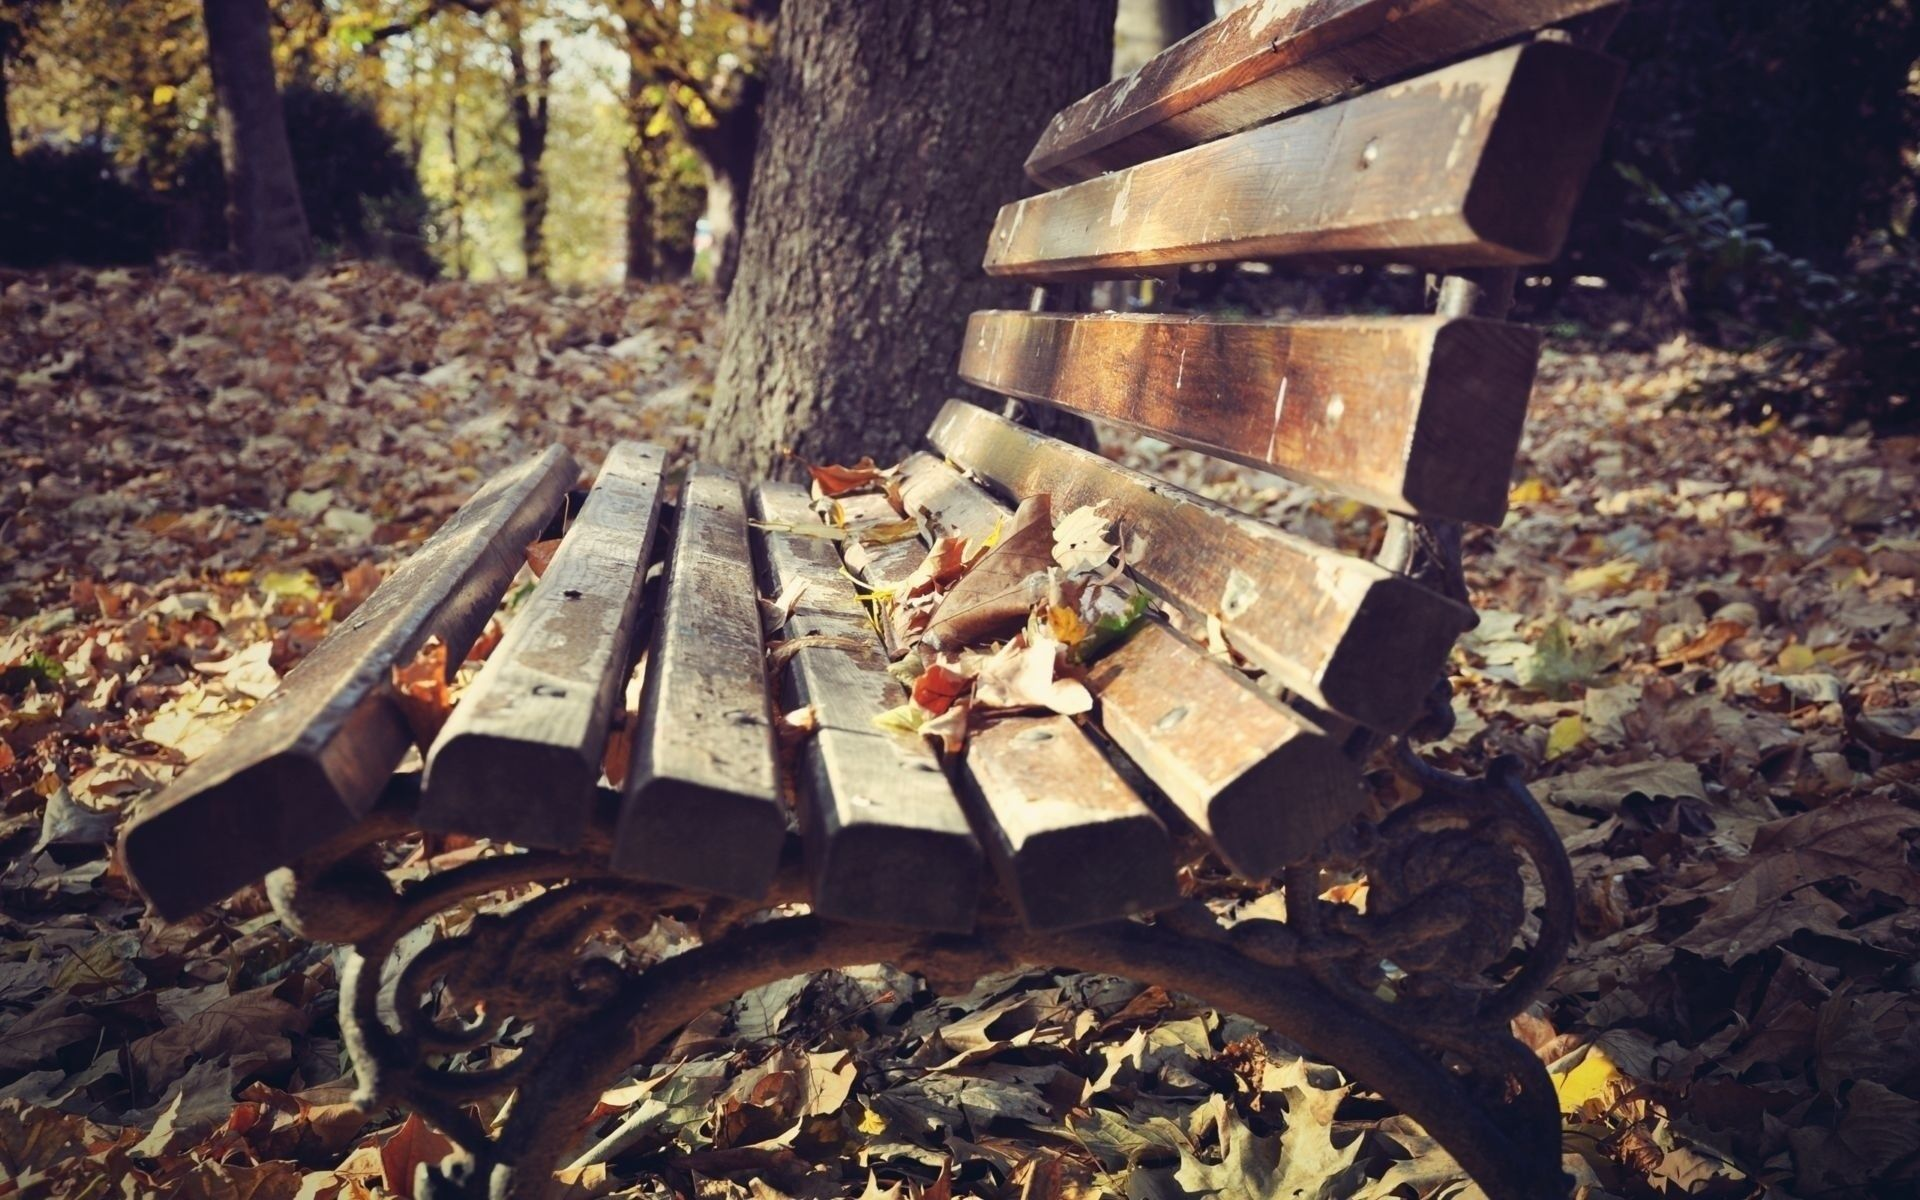 #1696838, bench category - Pretty bench pic